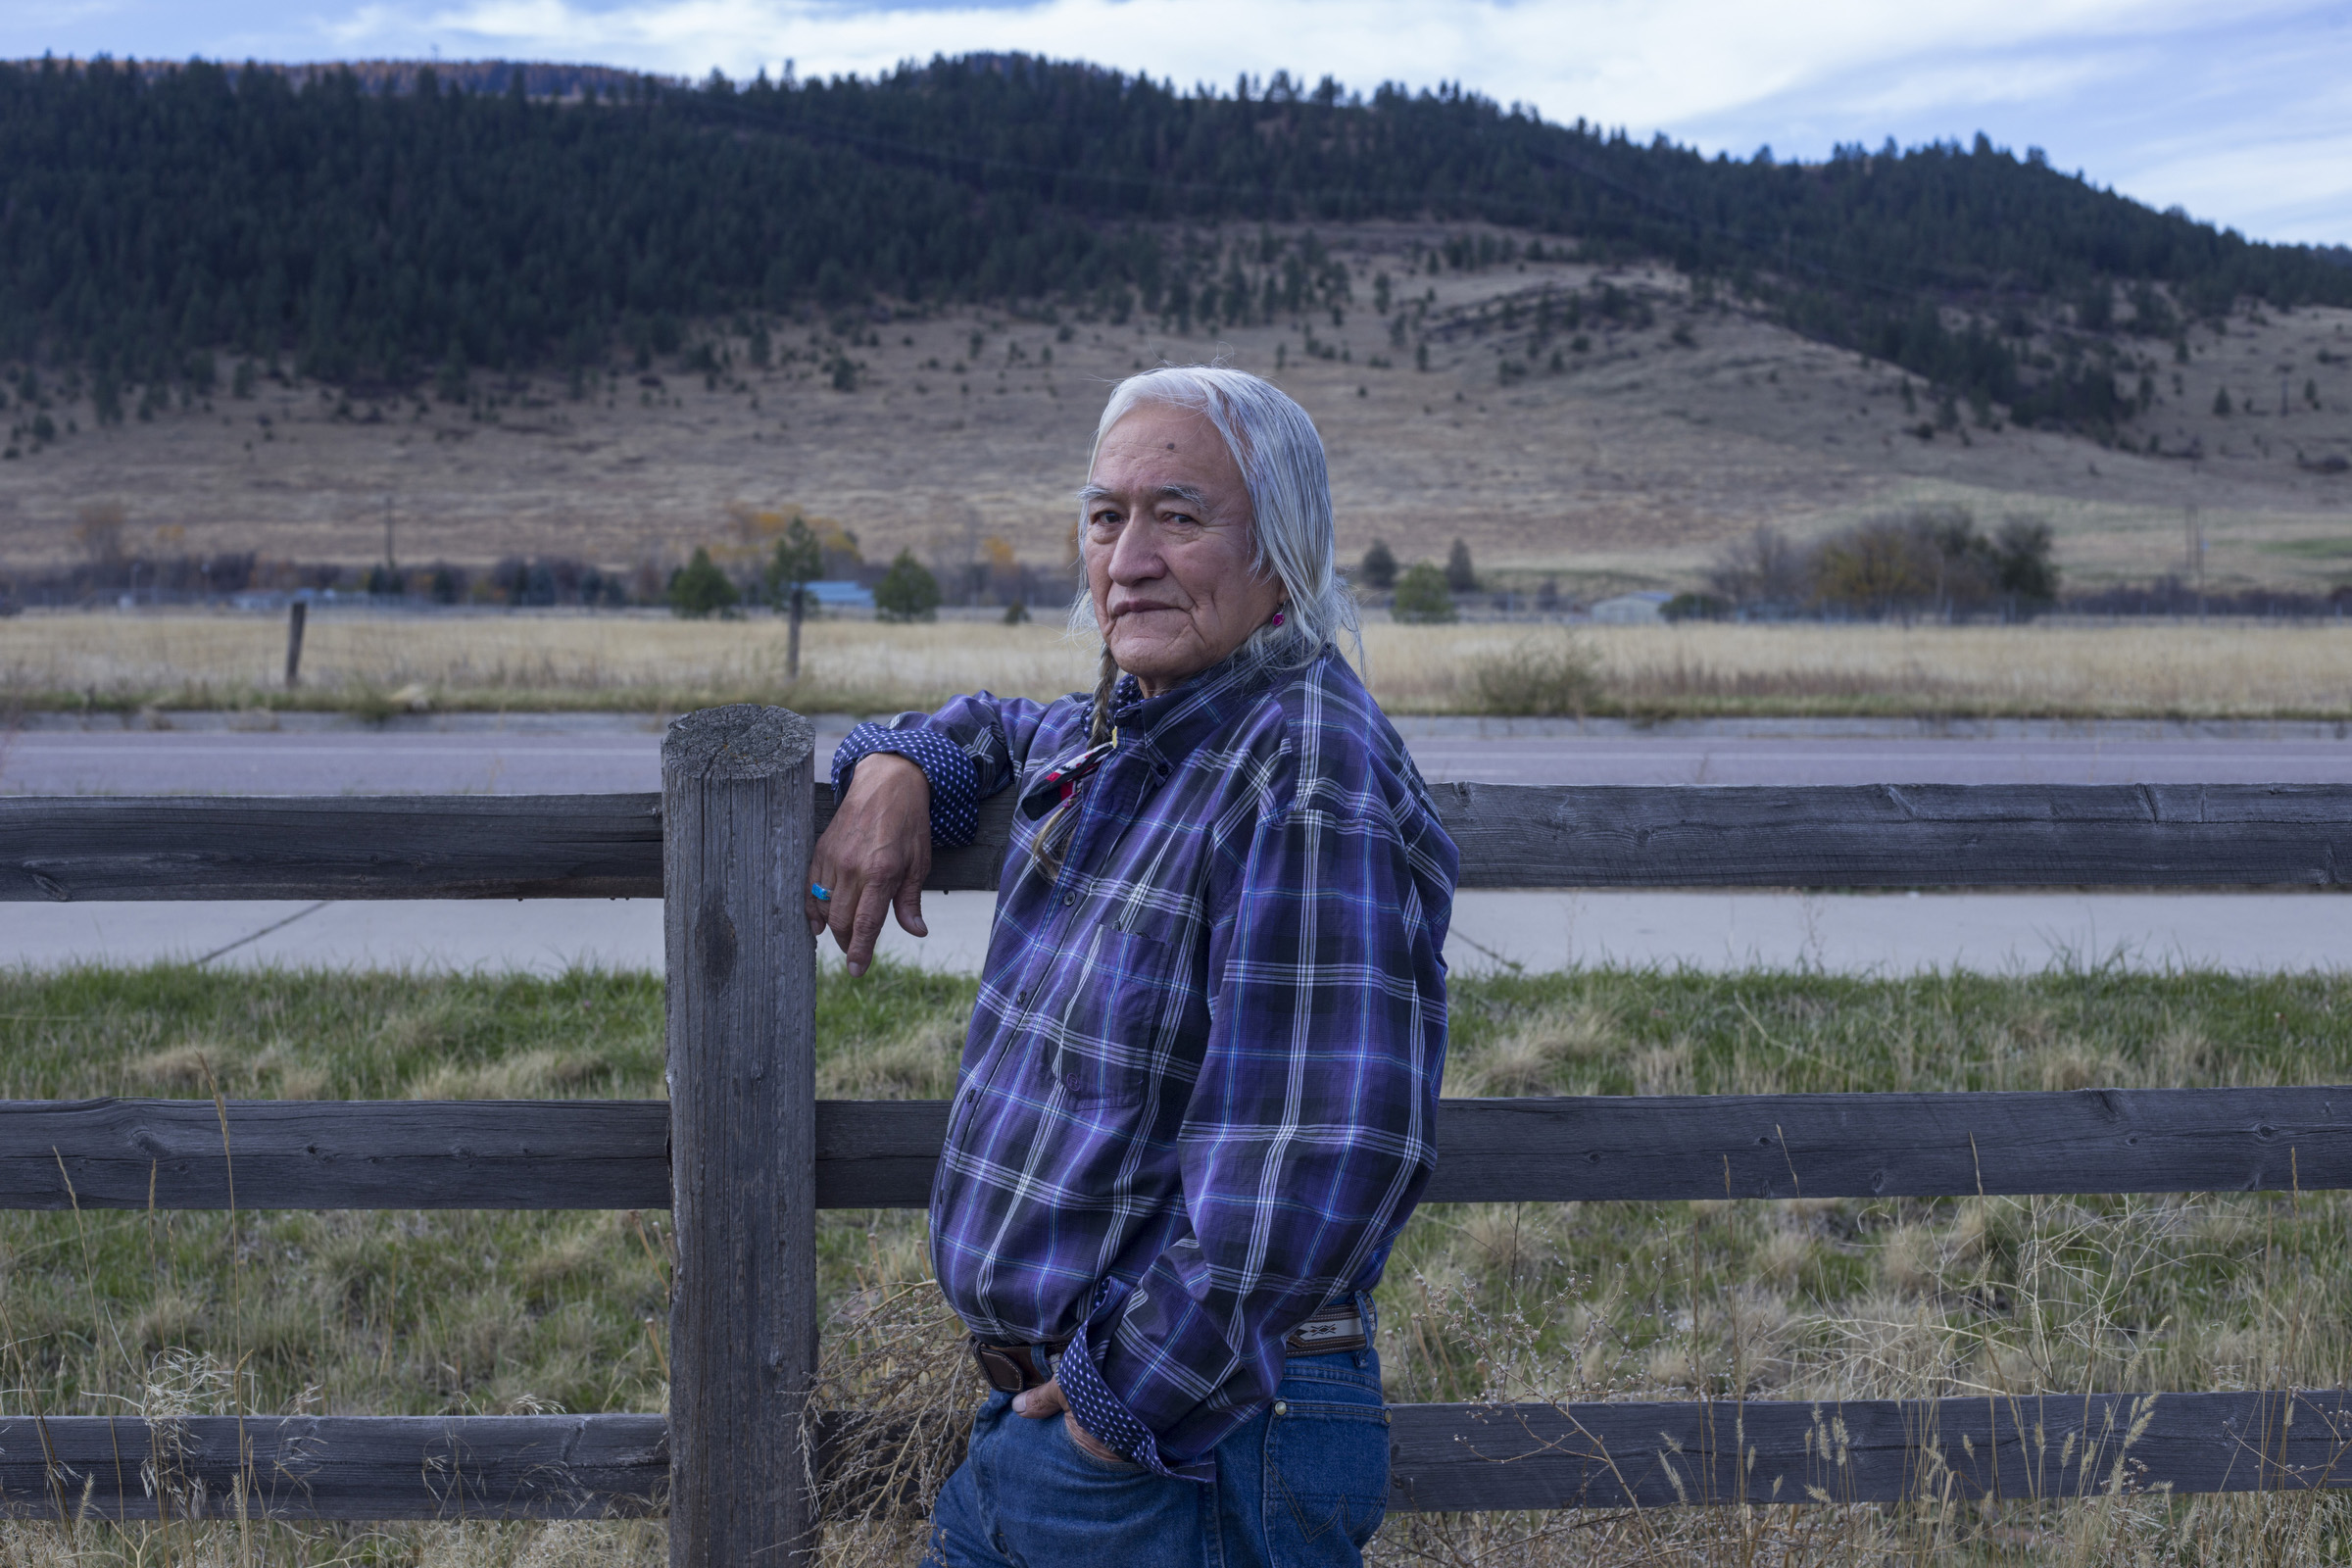 Stephen Small Salmon, 78, outside of Nkwusm, a Salish language school in Arlee, Montana, where he teaches, on October 22, 2017. Small Salmon is one of the few fluent speakers of the Salish tribal language on the Flathead Reservation. (Photo by Brittany Greeson)